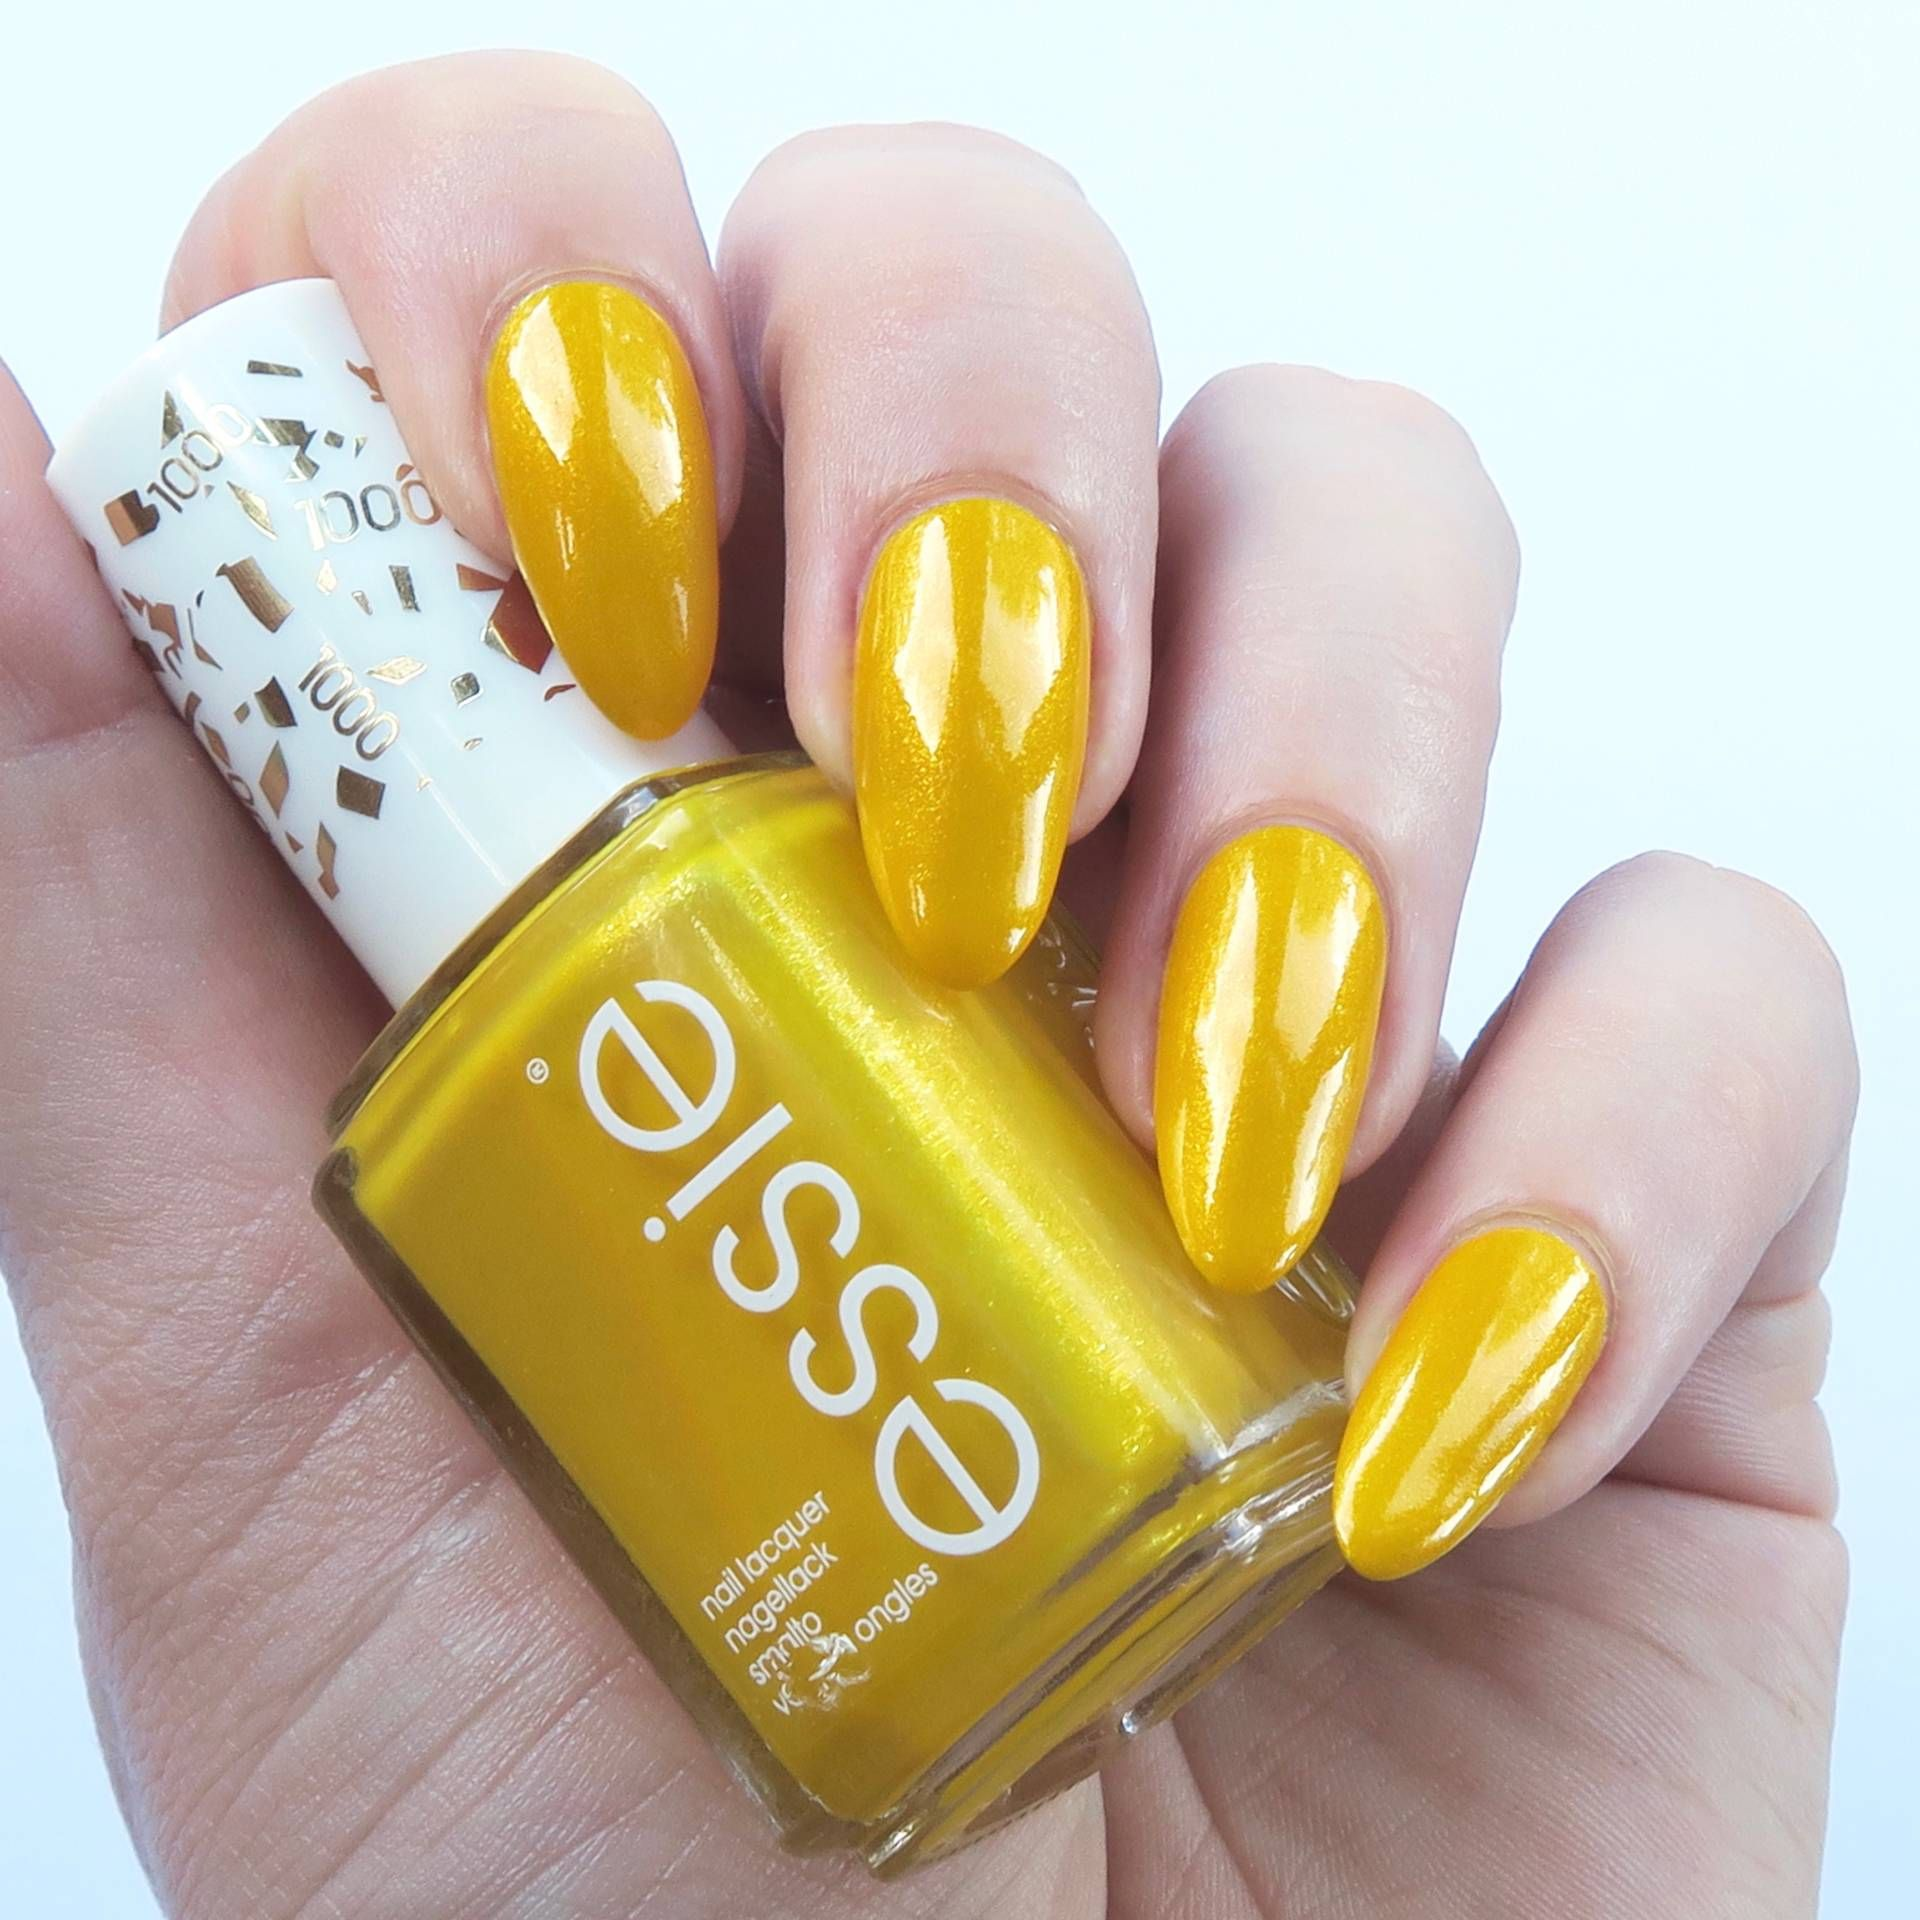 Essie Gel Couture Review | Essie gel, Yellow nails and Manicure